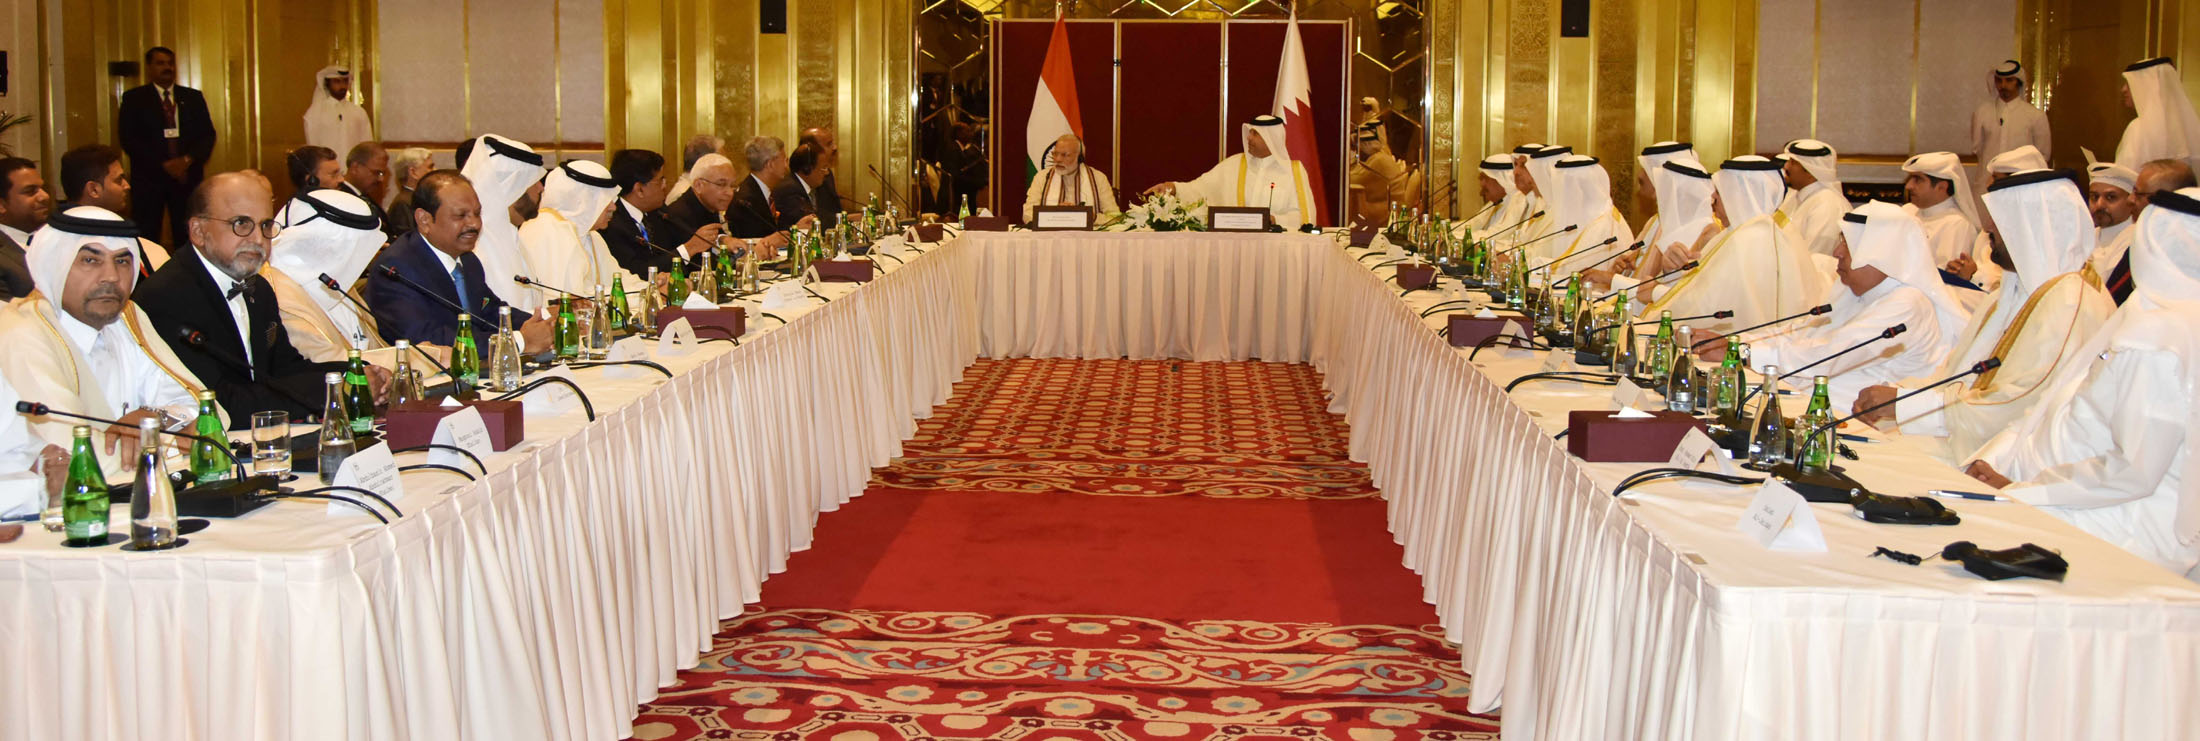 The Prime Minister, Shri Narendra Modi with the Business Leaders during a Round Table meeting, at Doha, Qatar on June 05, 2016.